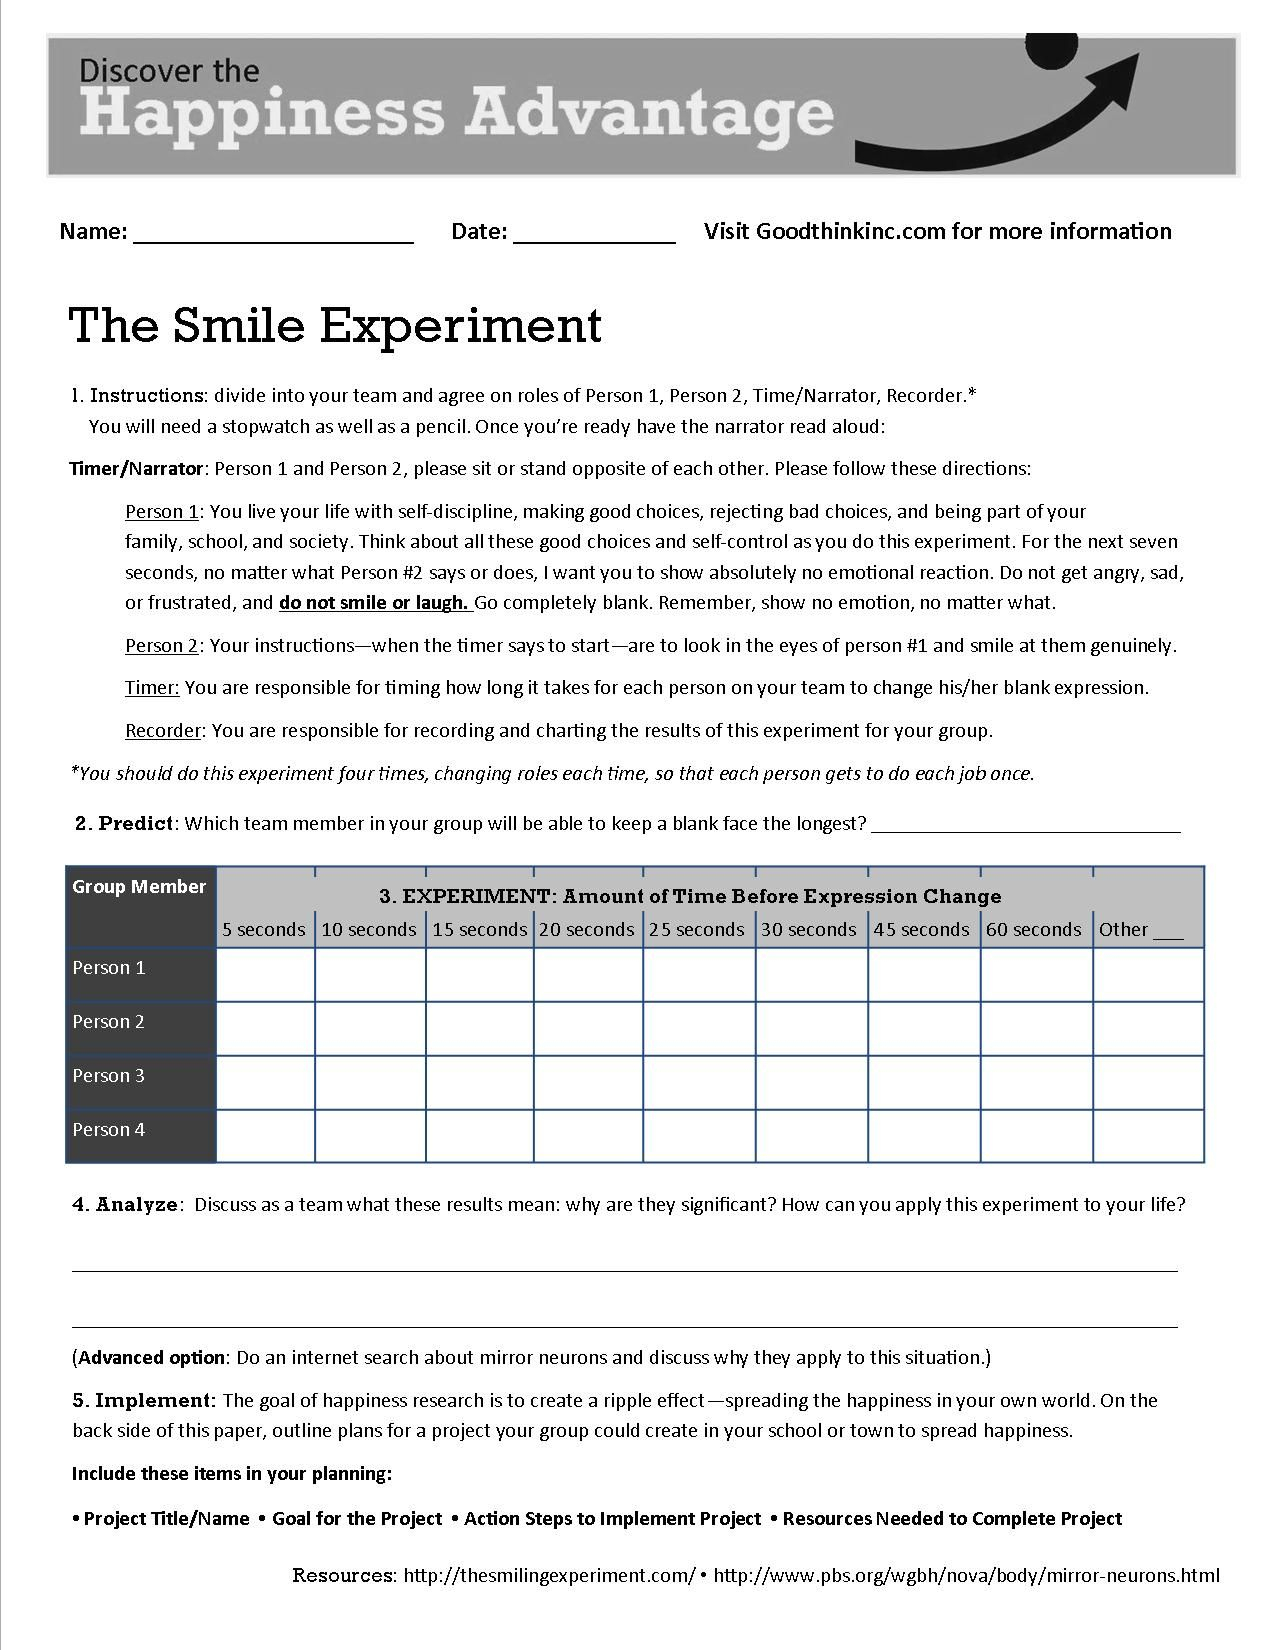 This Is Goodthink's Smile Experiment Worksheet That Turns Our Smile   Printable Mental Health Worksheets For Adults